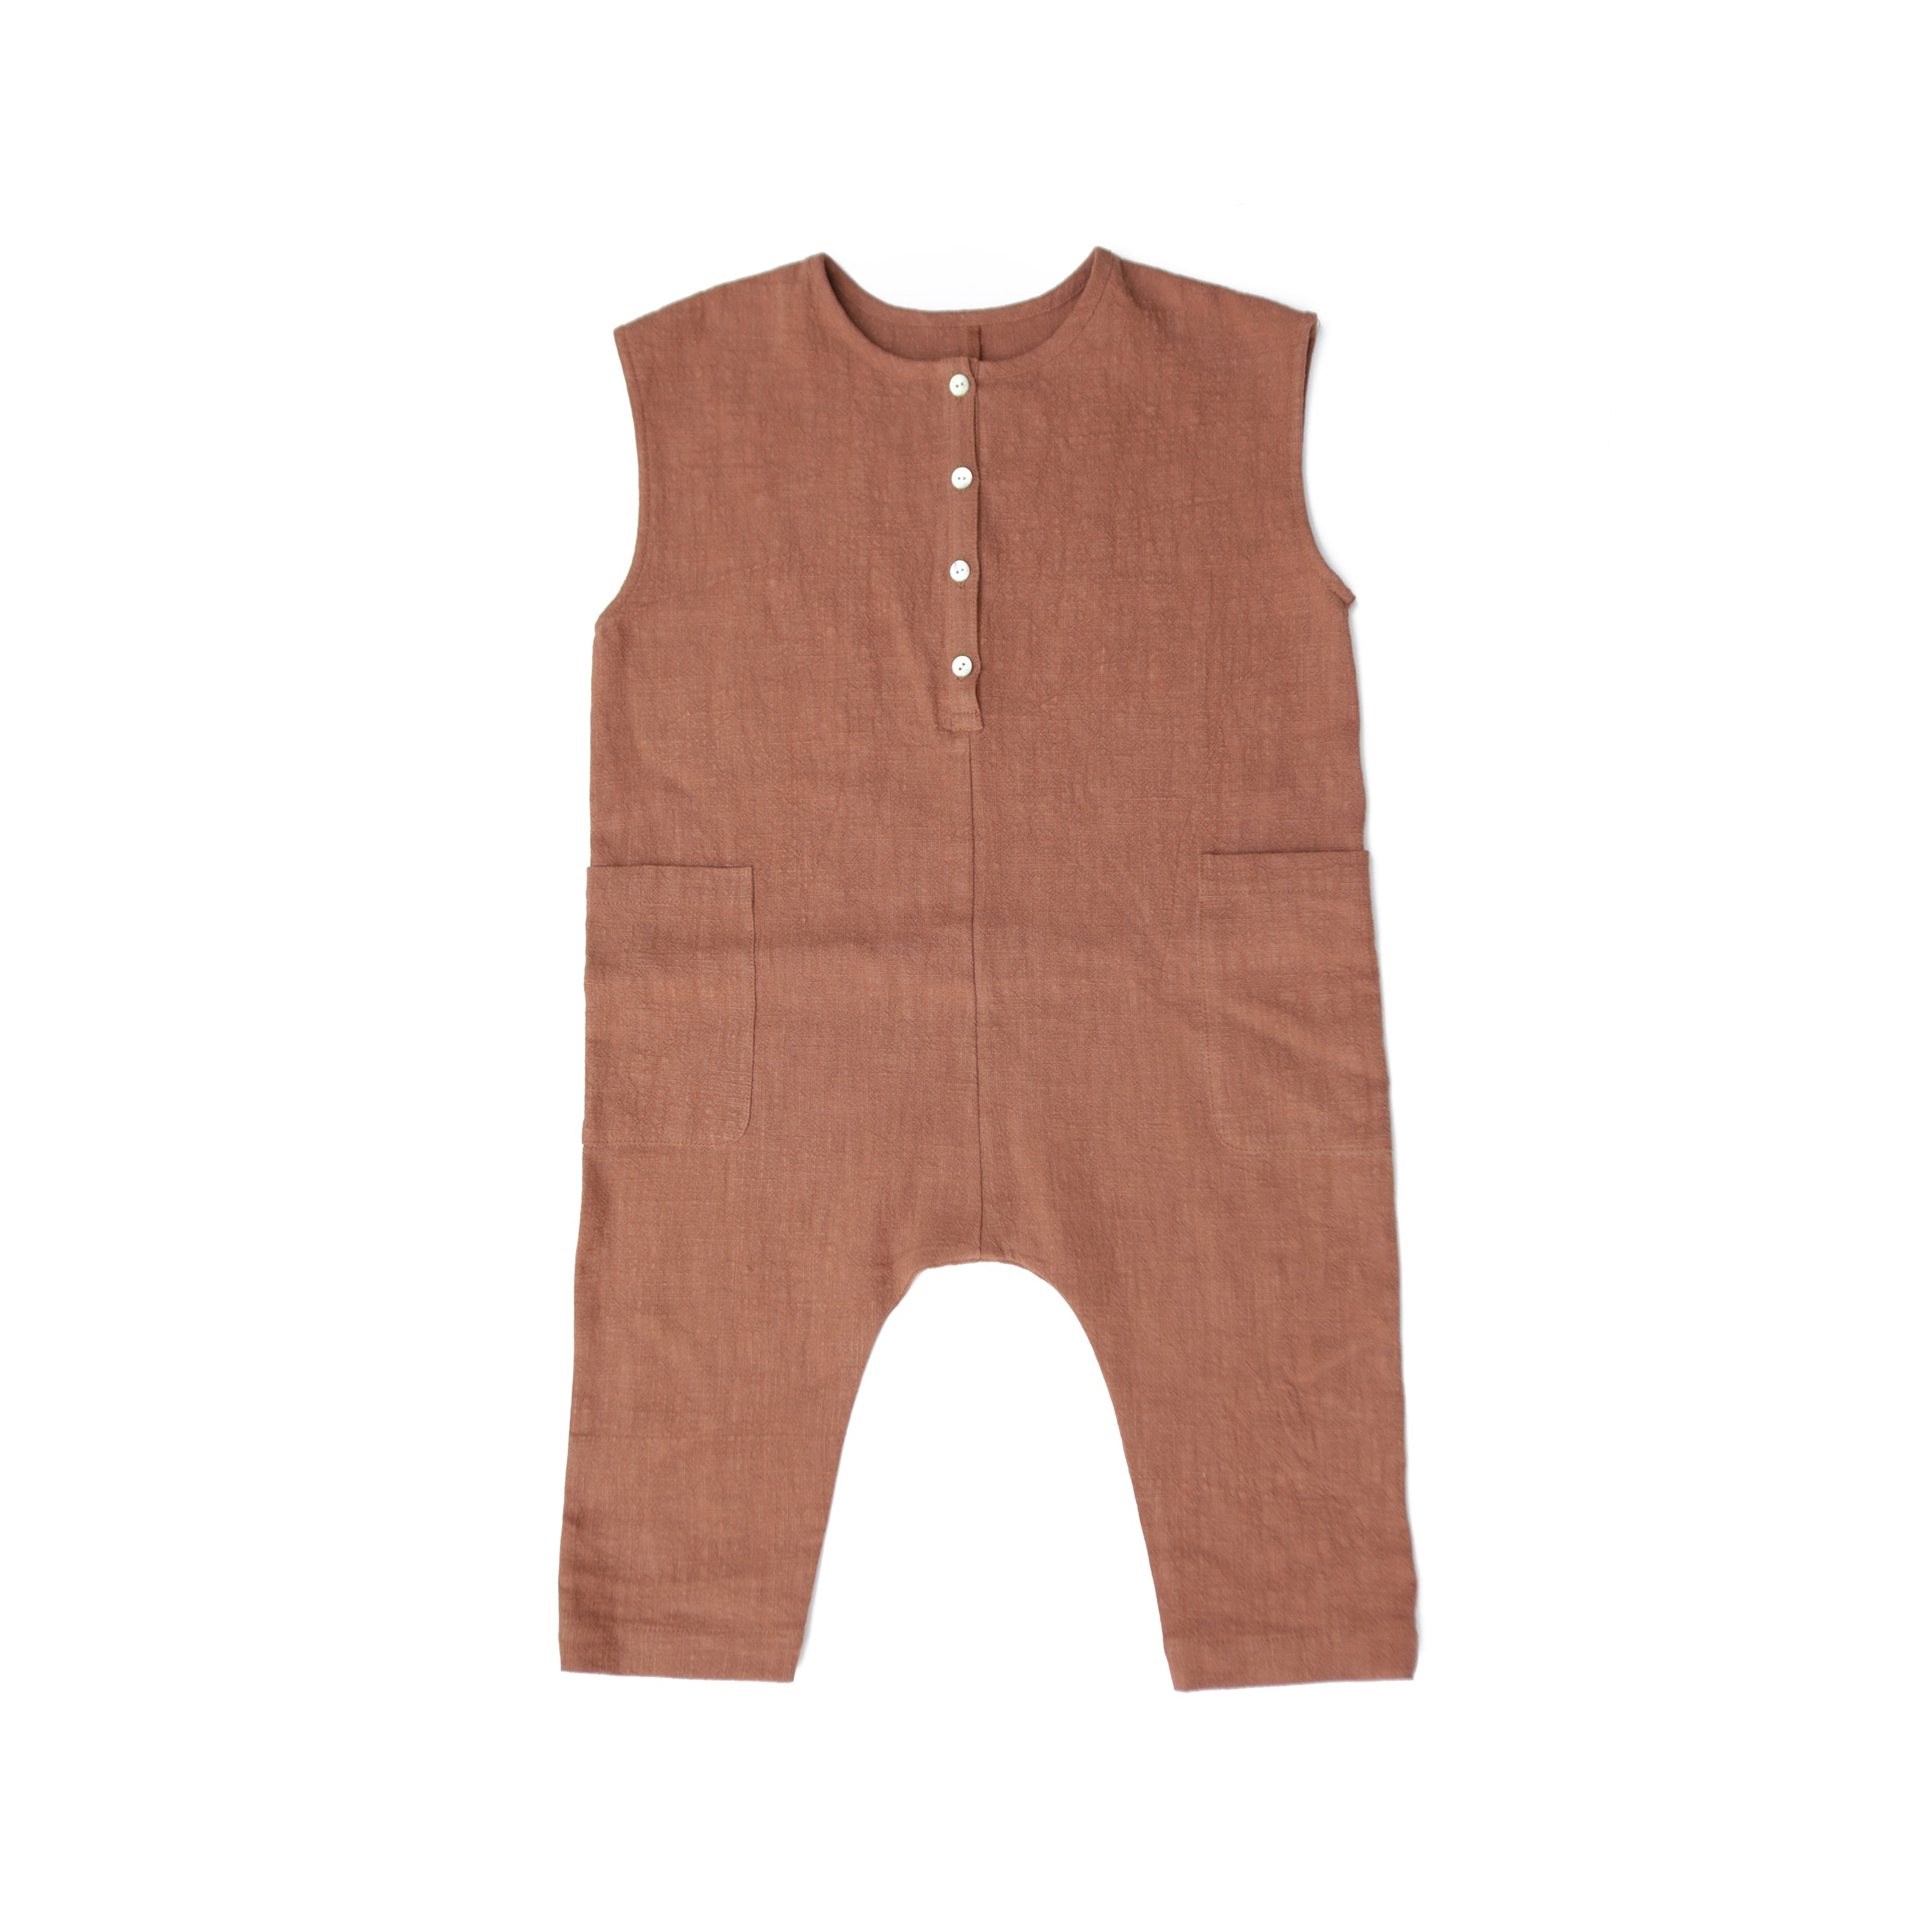 Tambere Sleeveless Kid's Romper in Orange Brown | BIEN BIEN